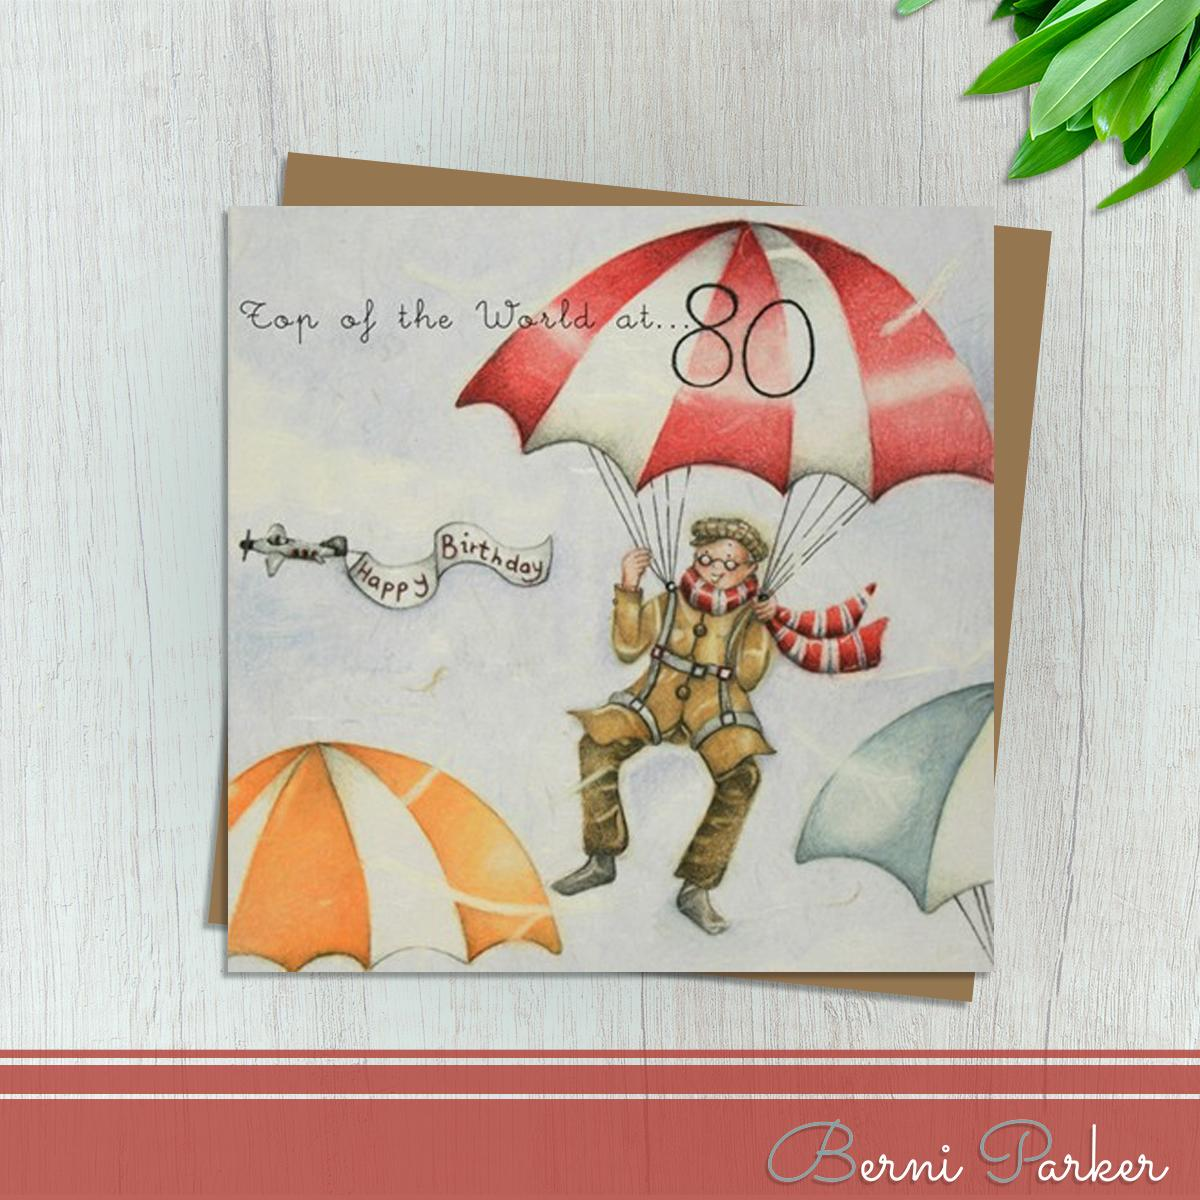 Showing A Man parachuting With An Aeroplane Trailing Happy Birthday. Caption: Top Of The World At 80. Blank Inside For Your Own Message. Complete With Brown Kraft Envelope